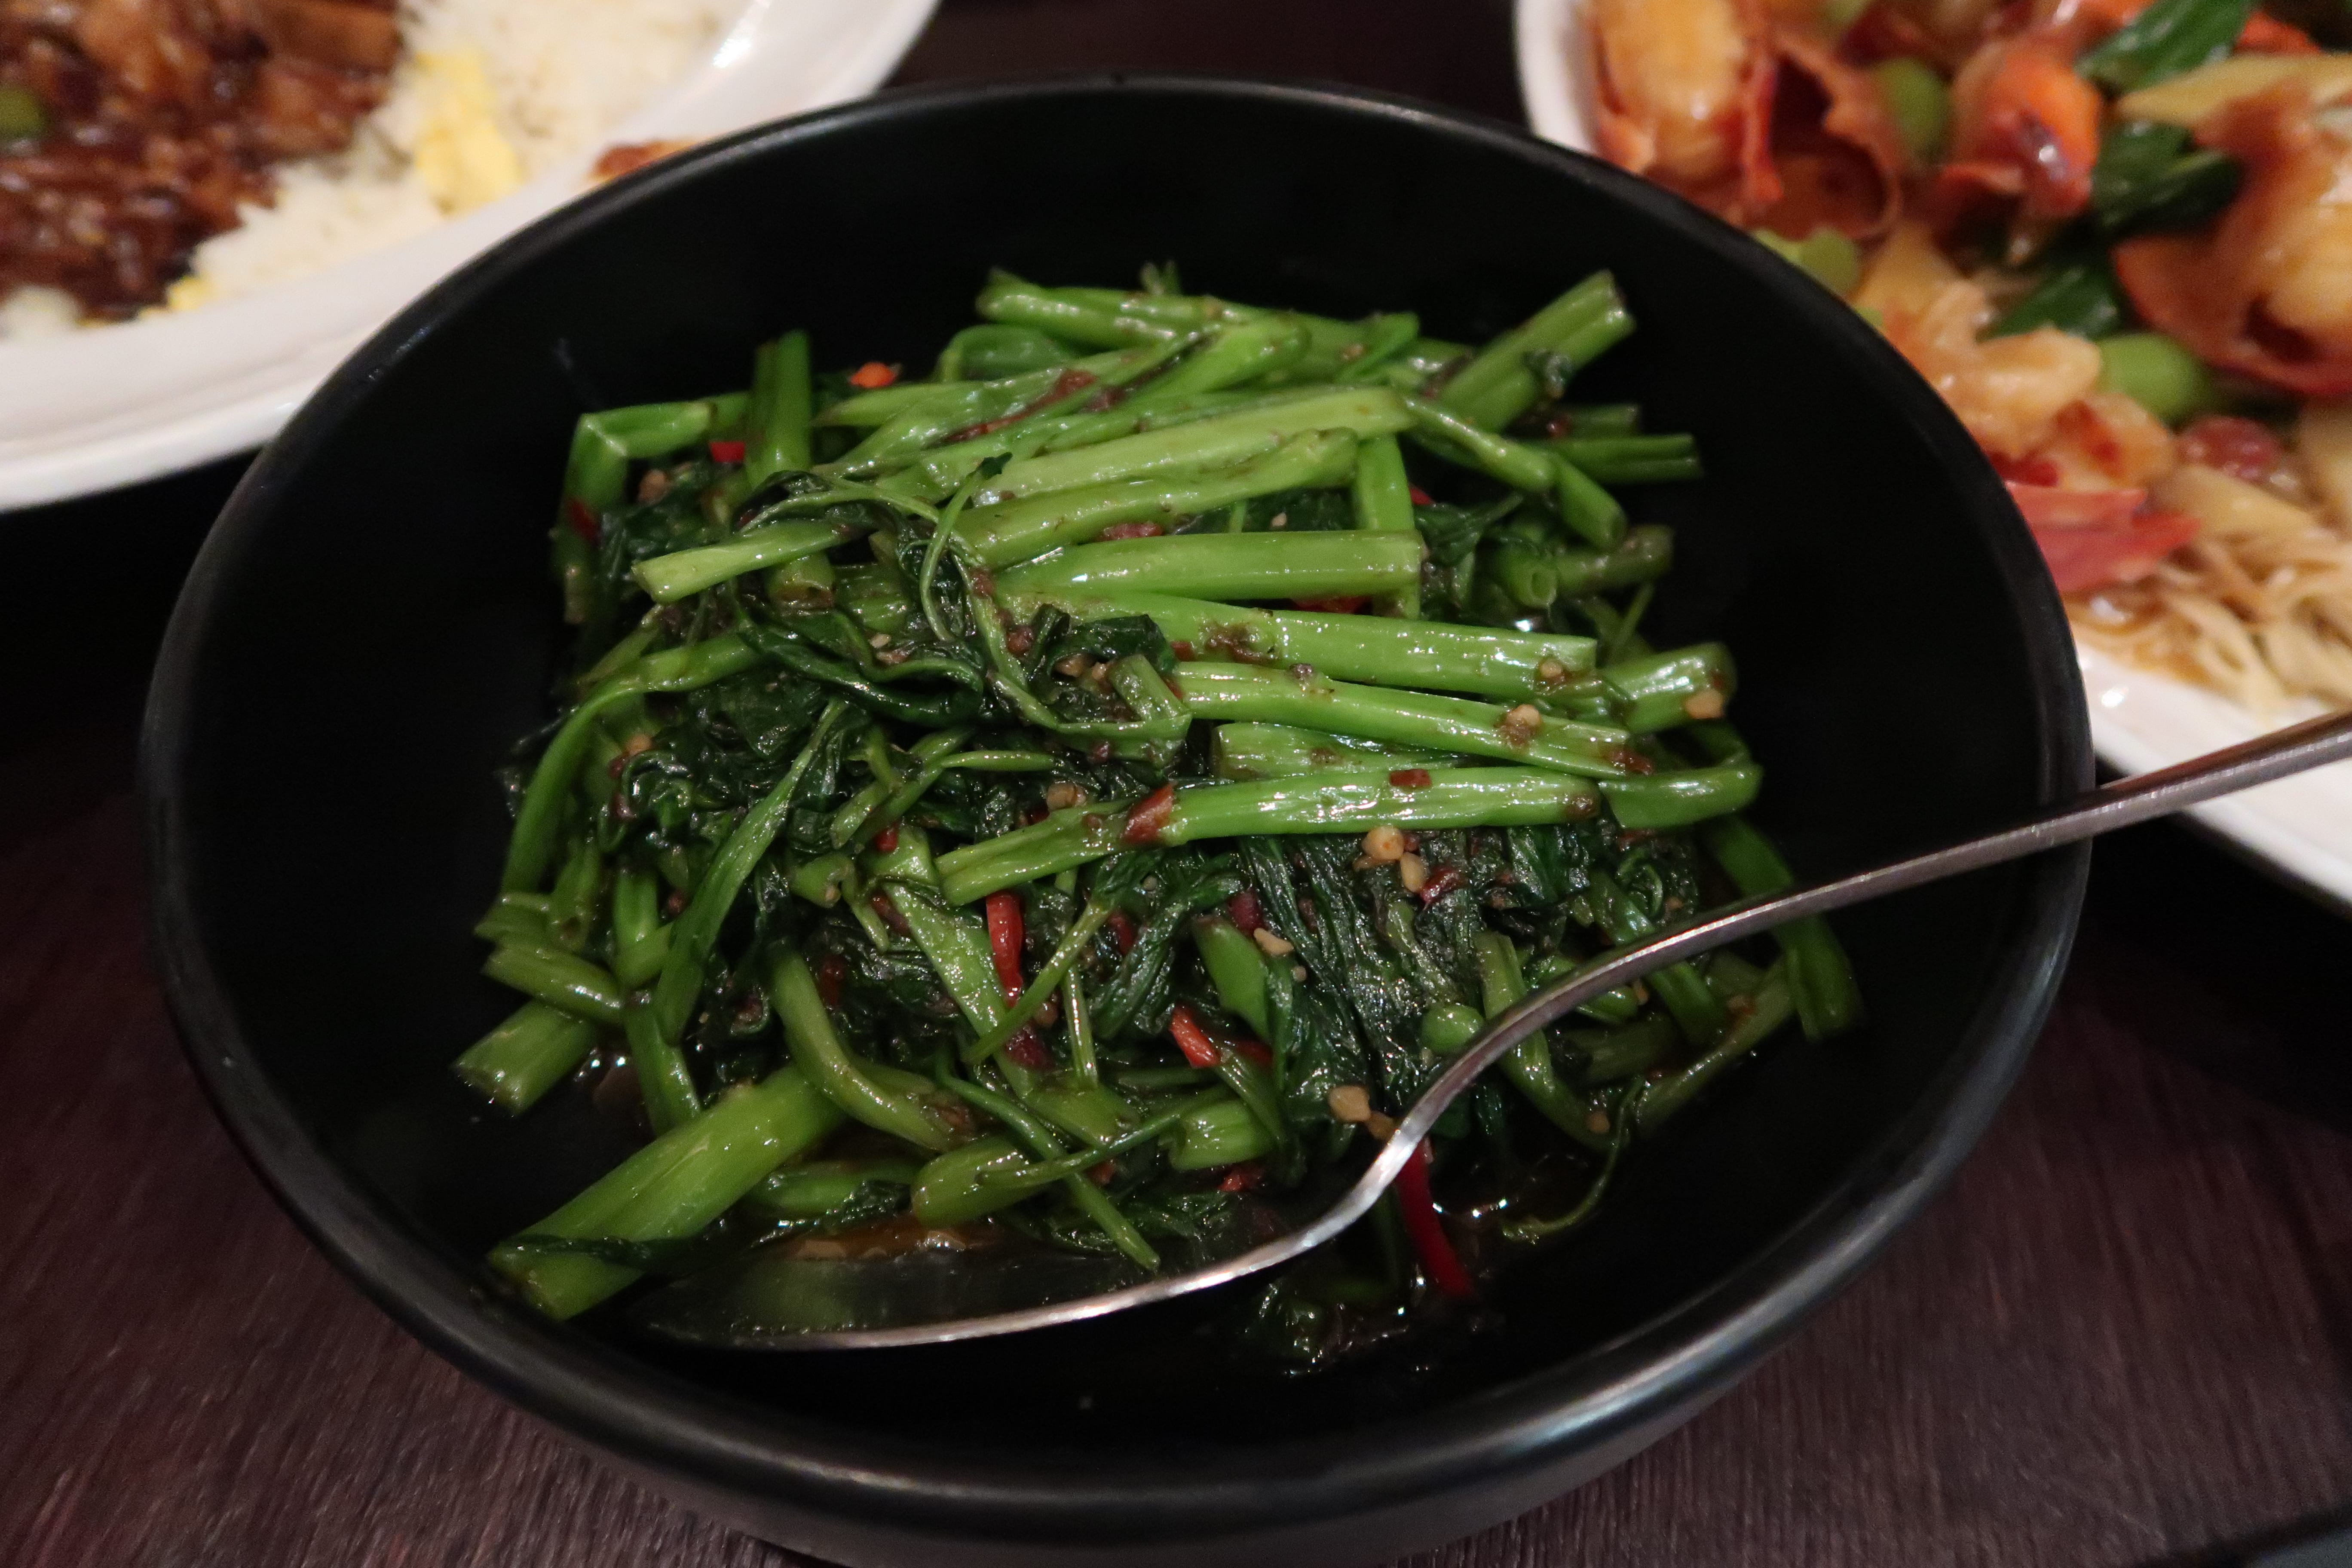 Morning glory vegetables served in a black bowl